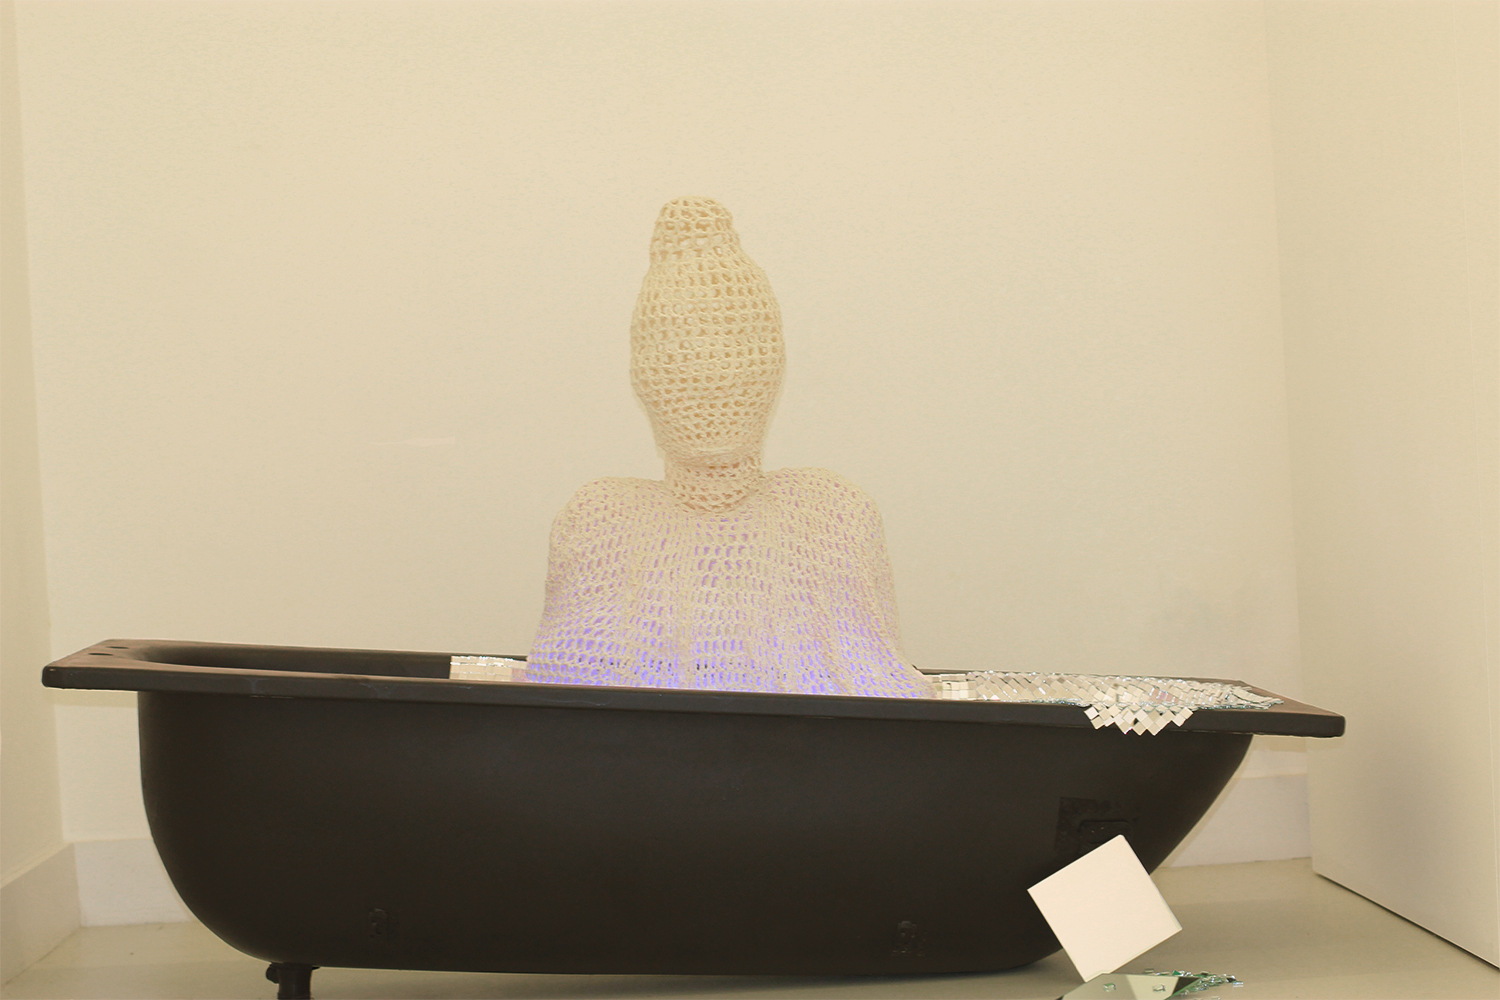 Installation, a crocheted Buddha sculpture in a customized bath tub, 2010.